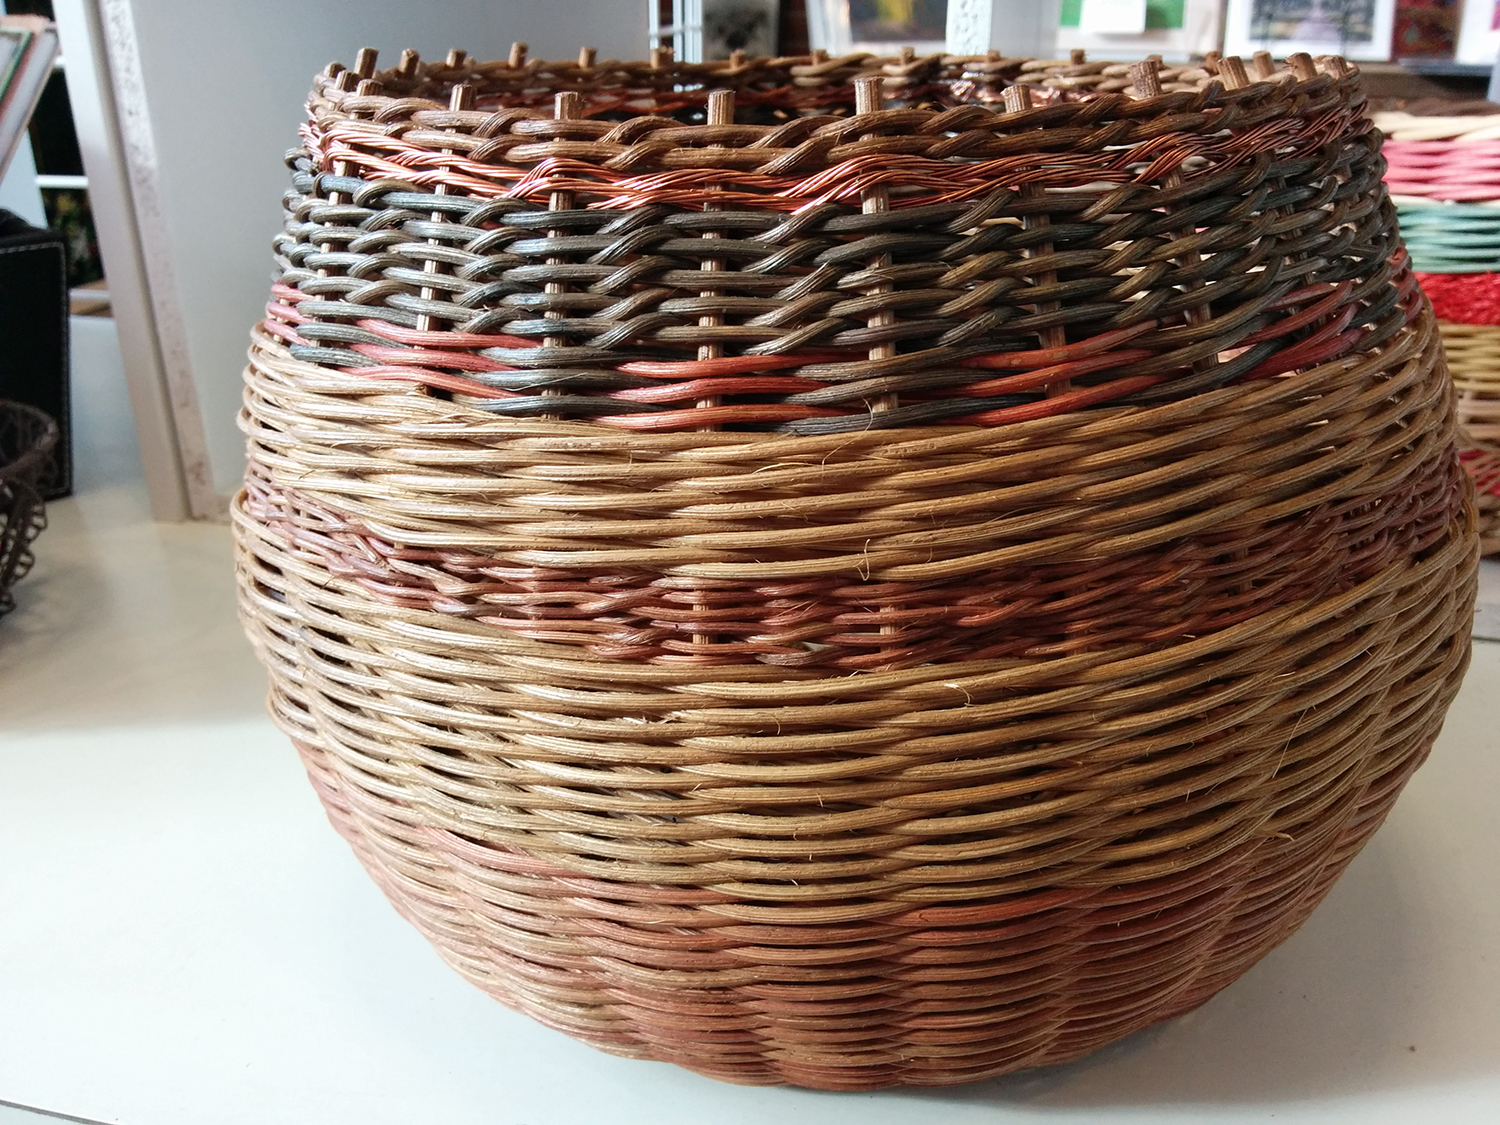 basketry by Barry Cheney